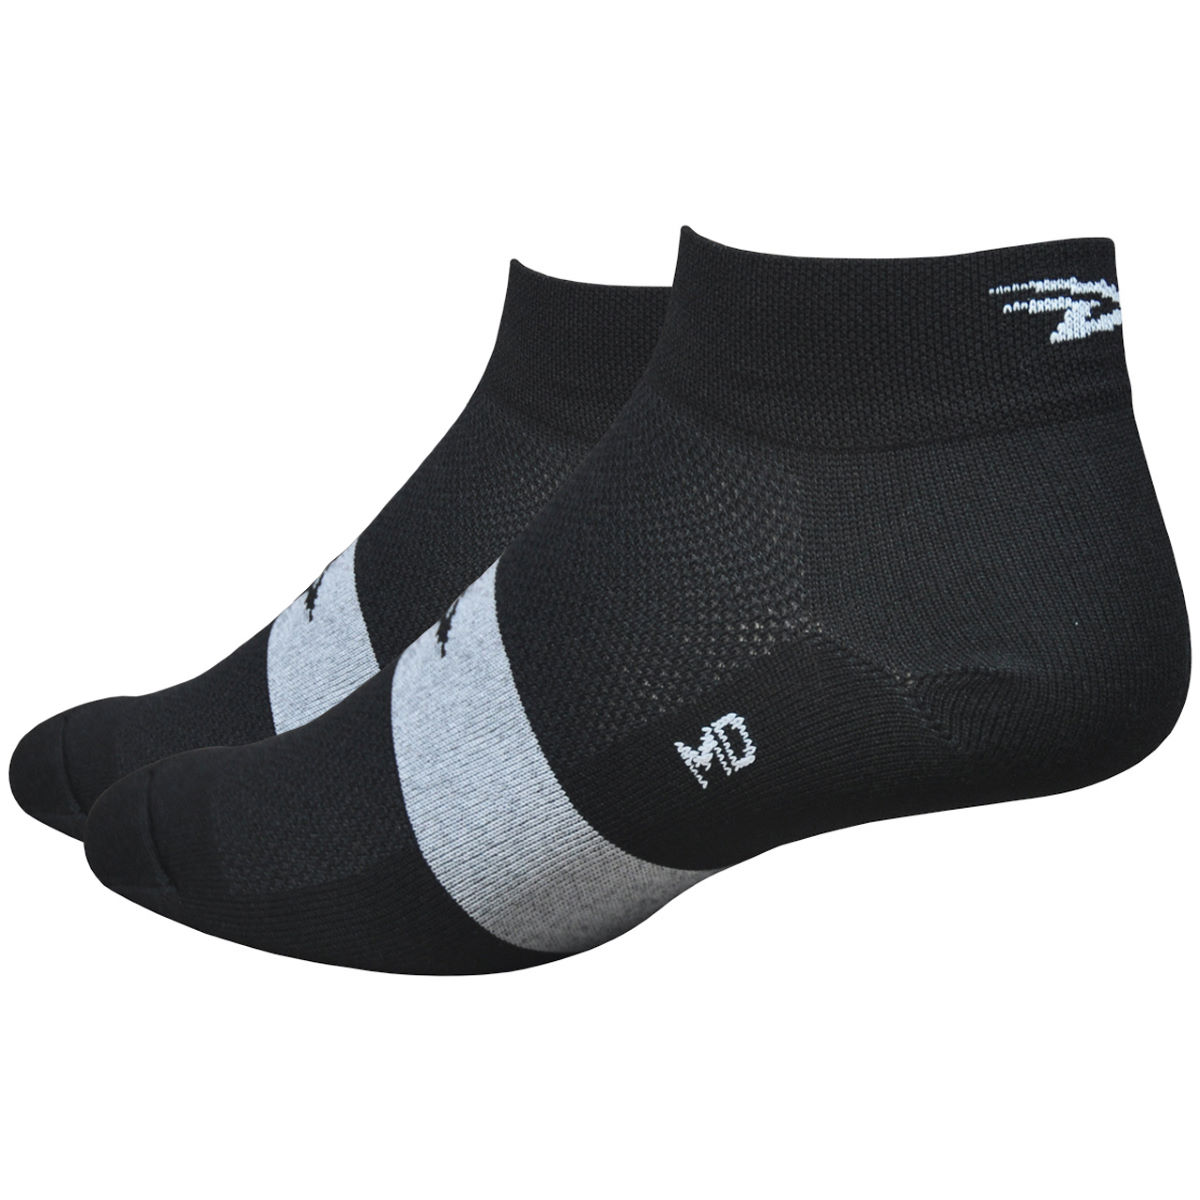 Chaussettes DeFeet Aireator Speede (2,5 cm environ) - Large